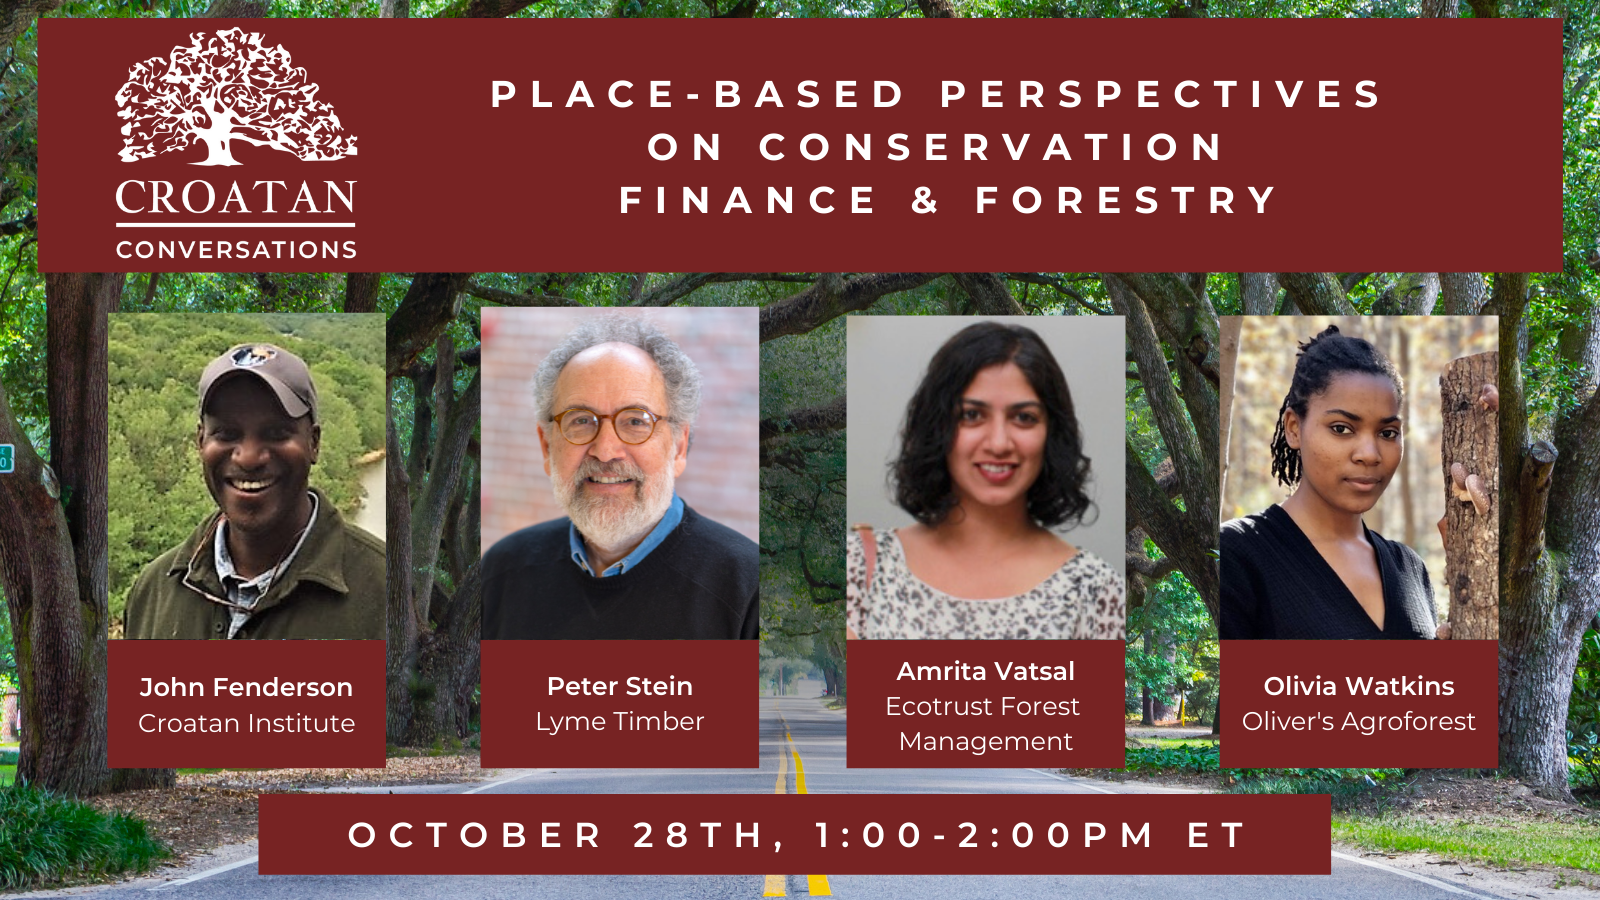 Place-Based Perspectives on Conservation Finance & Forestry